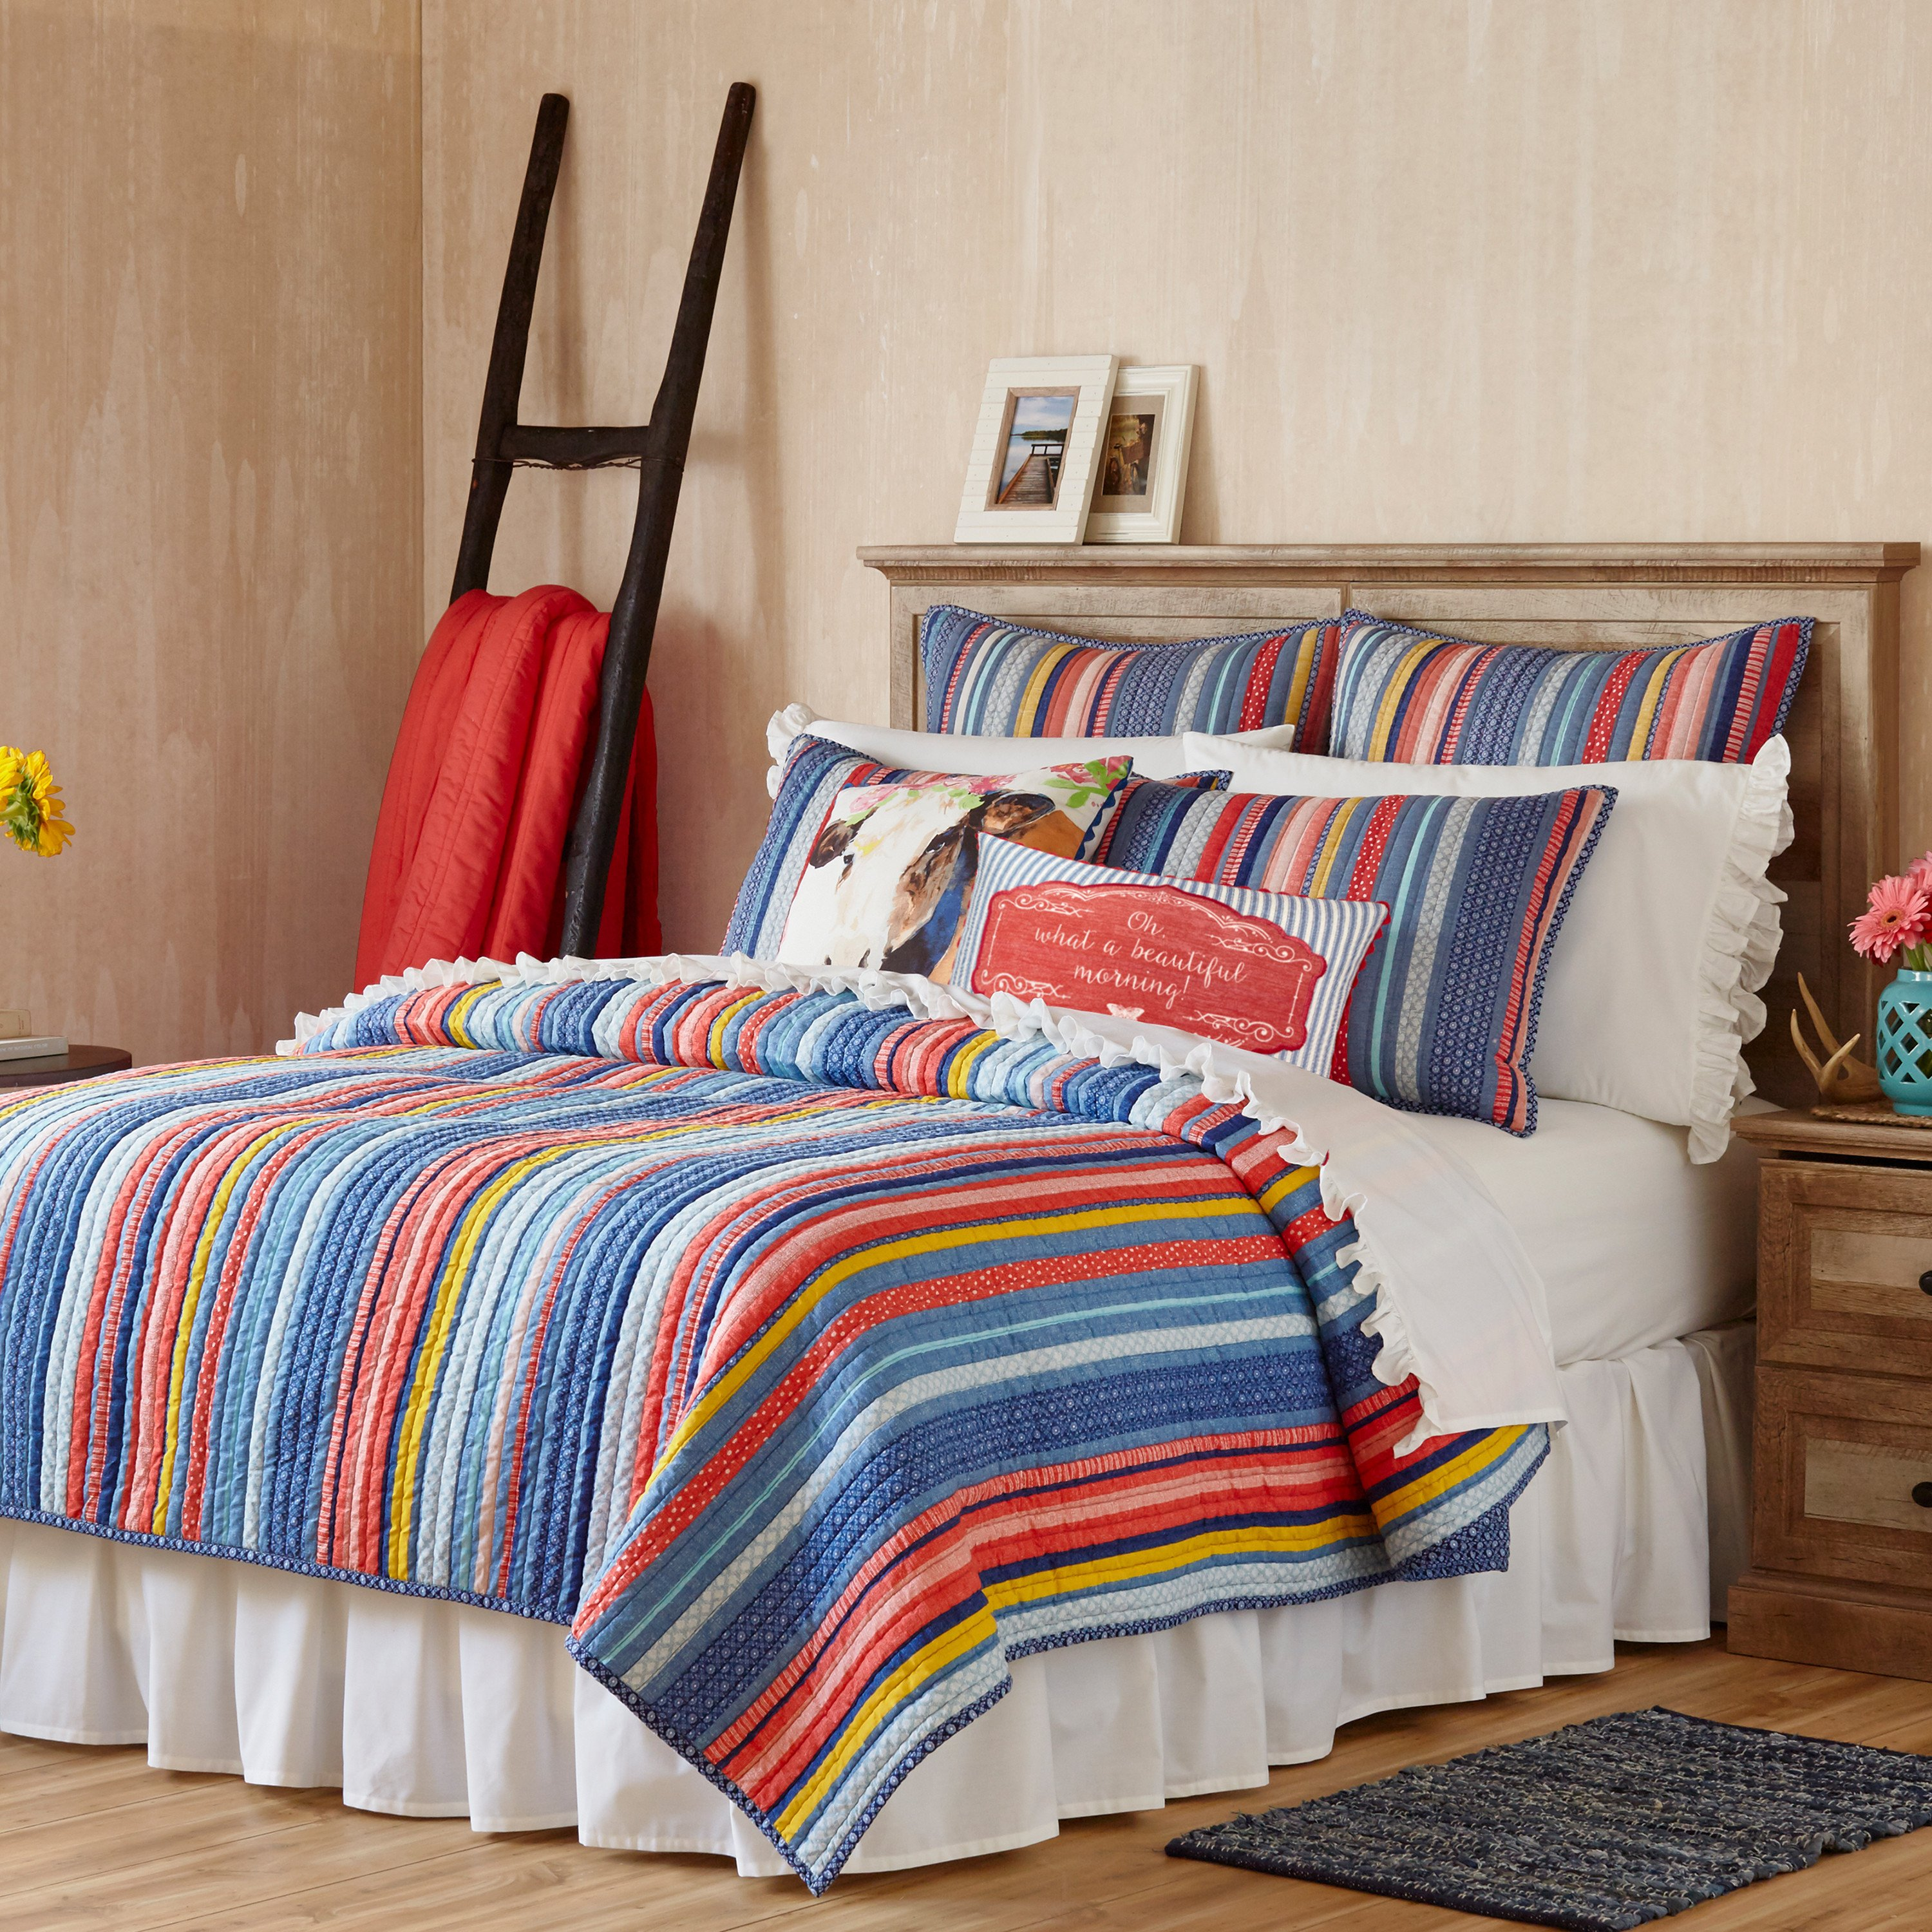 pioneer-woman-bedding